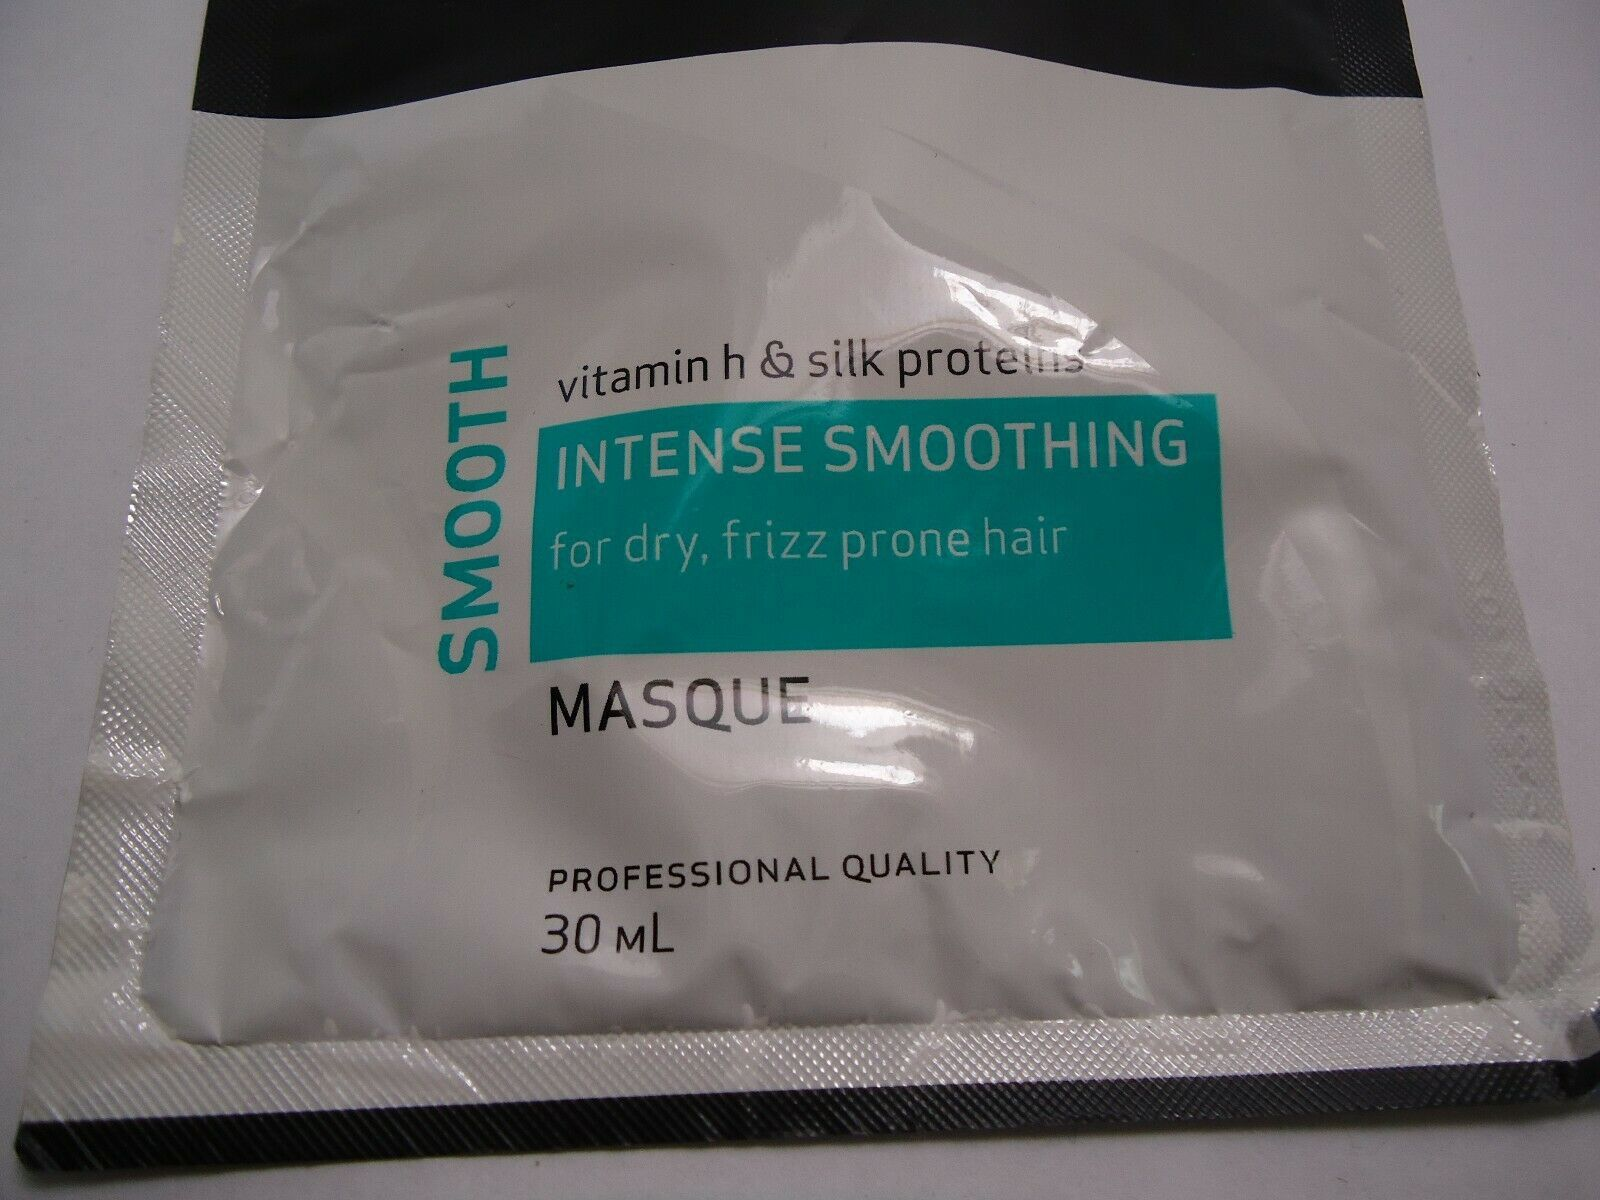 2 x Tresemme intense smoothing masque vitamin h silk proteins 30ml each hairmask